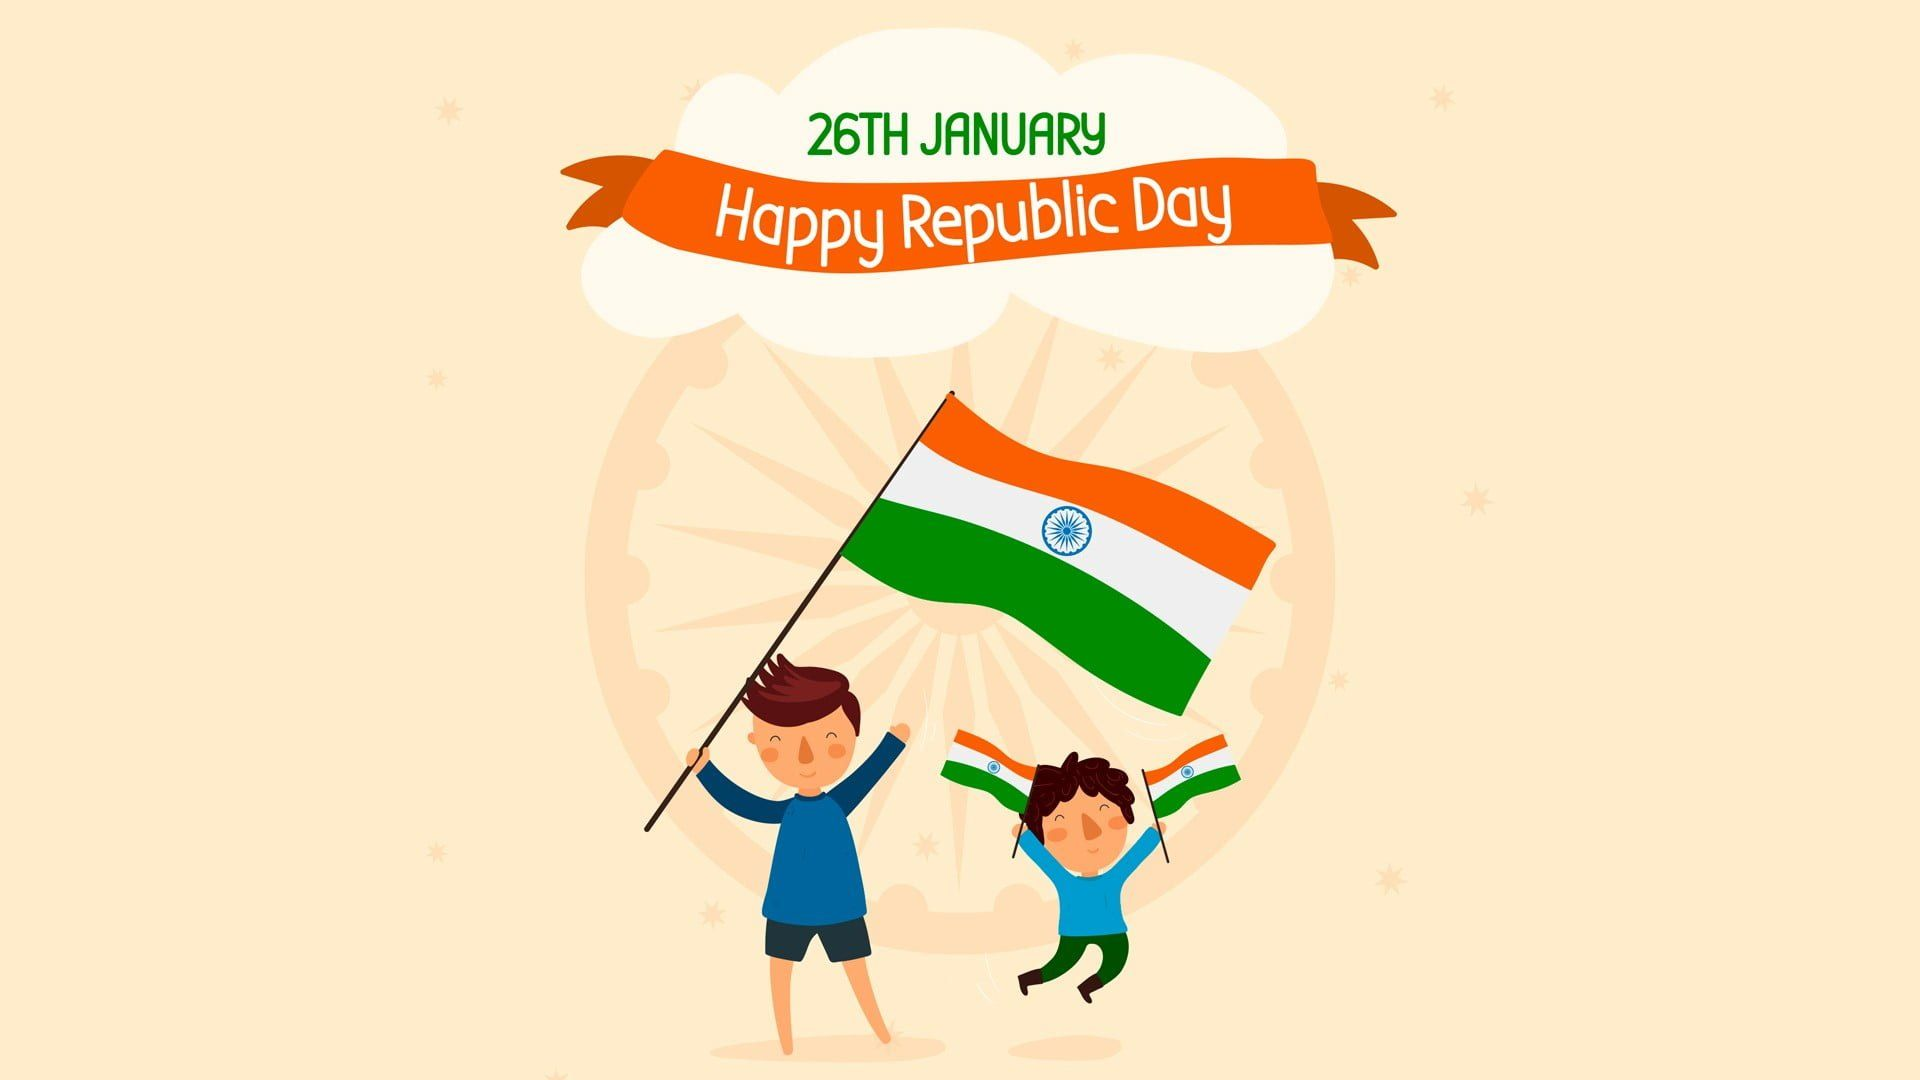 Happy Republic Day Images 2019 Happy Republic Day Wallpaper 2019 1920x1080